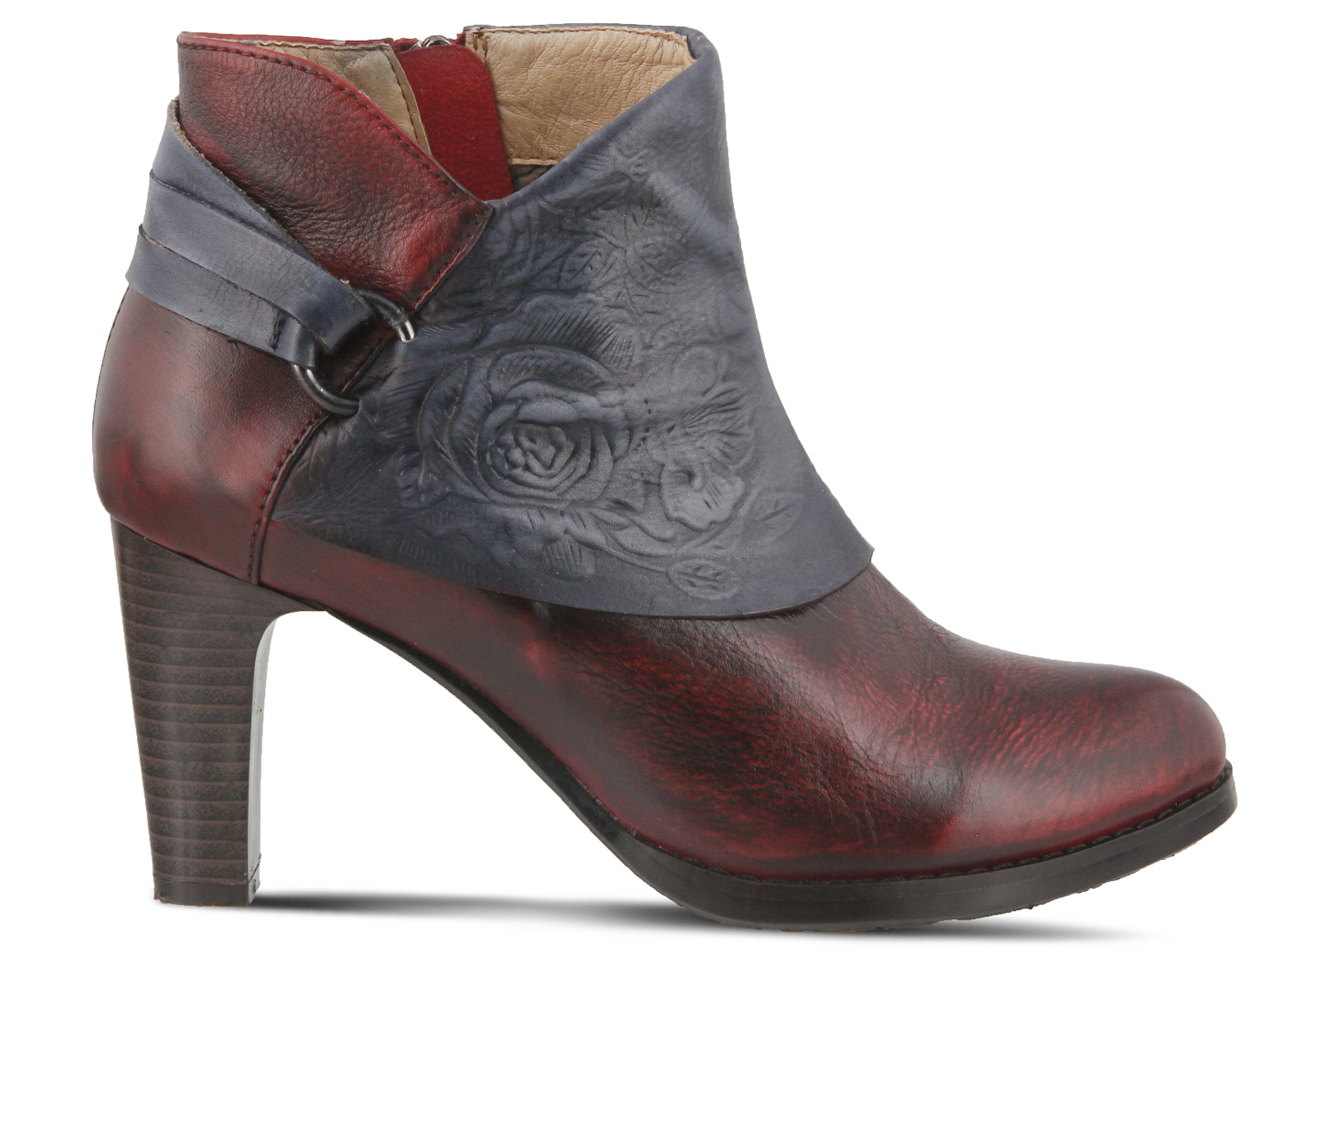 L'Artiste Lora Women's Boots (Red Leather)